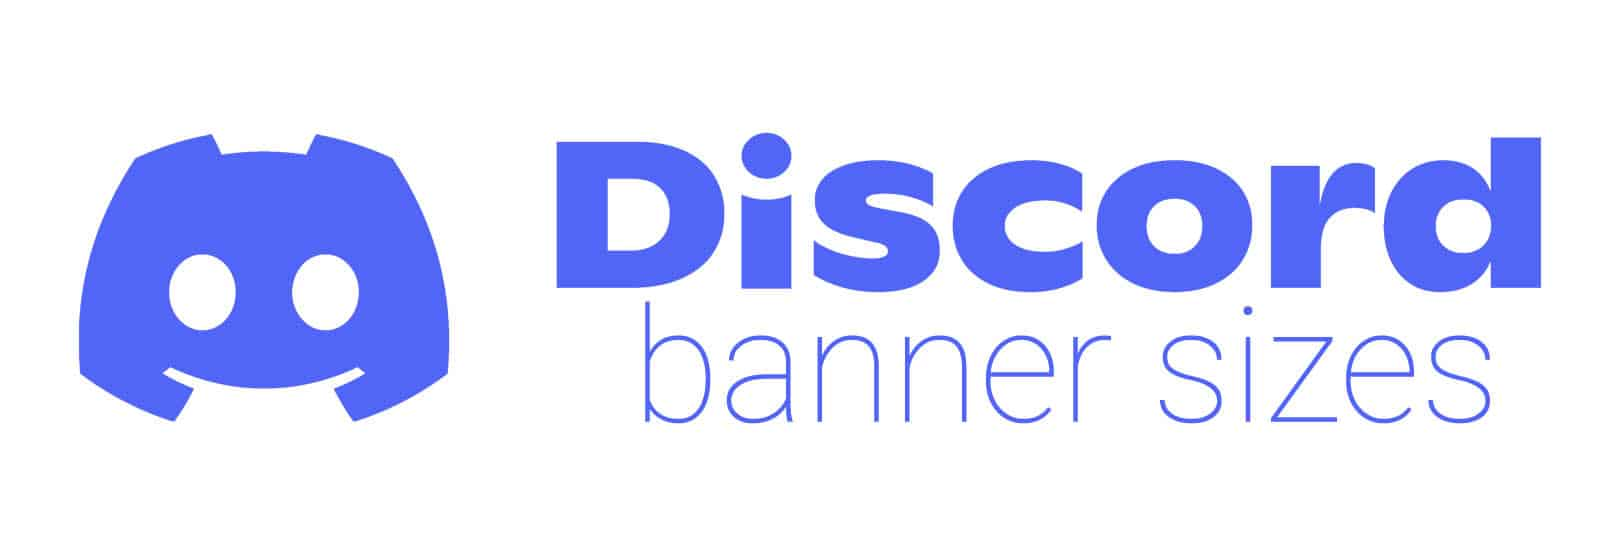 discord-banner-size